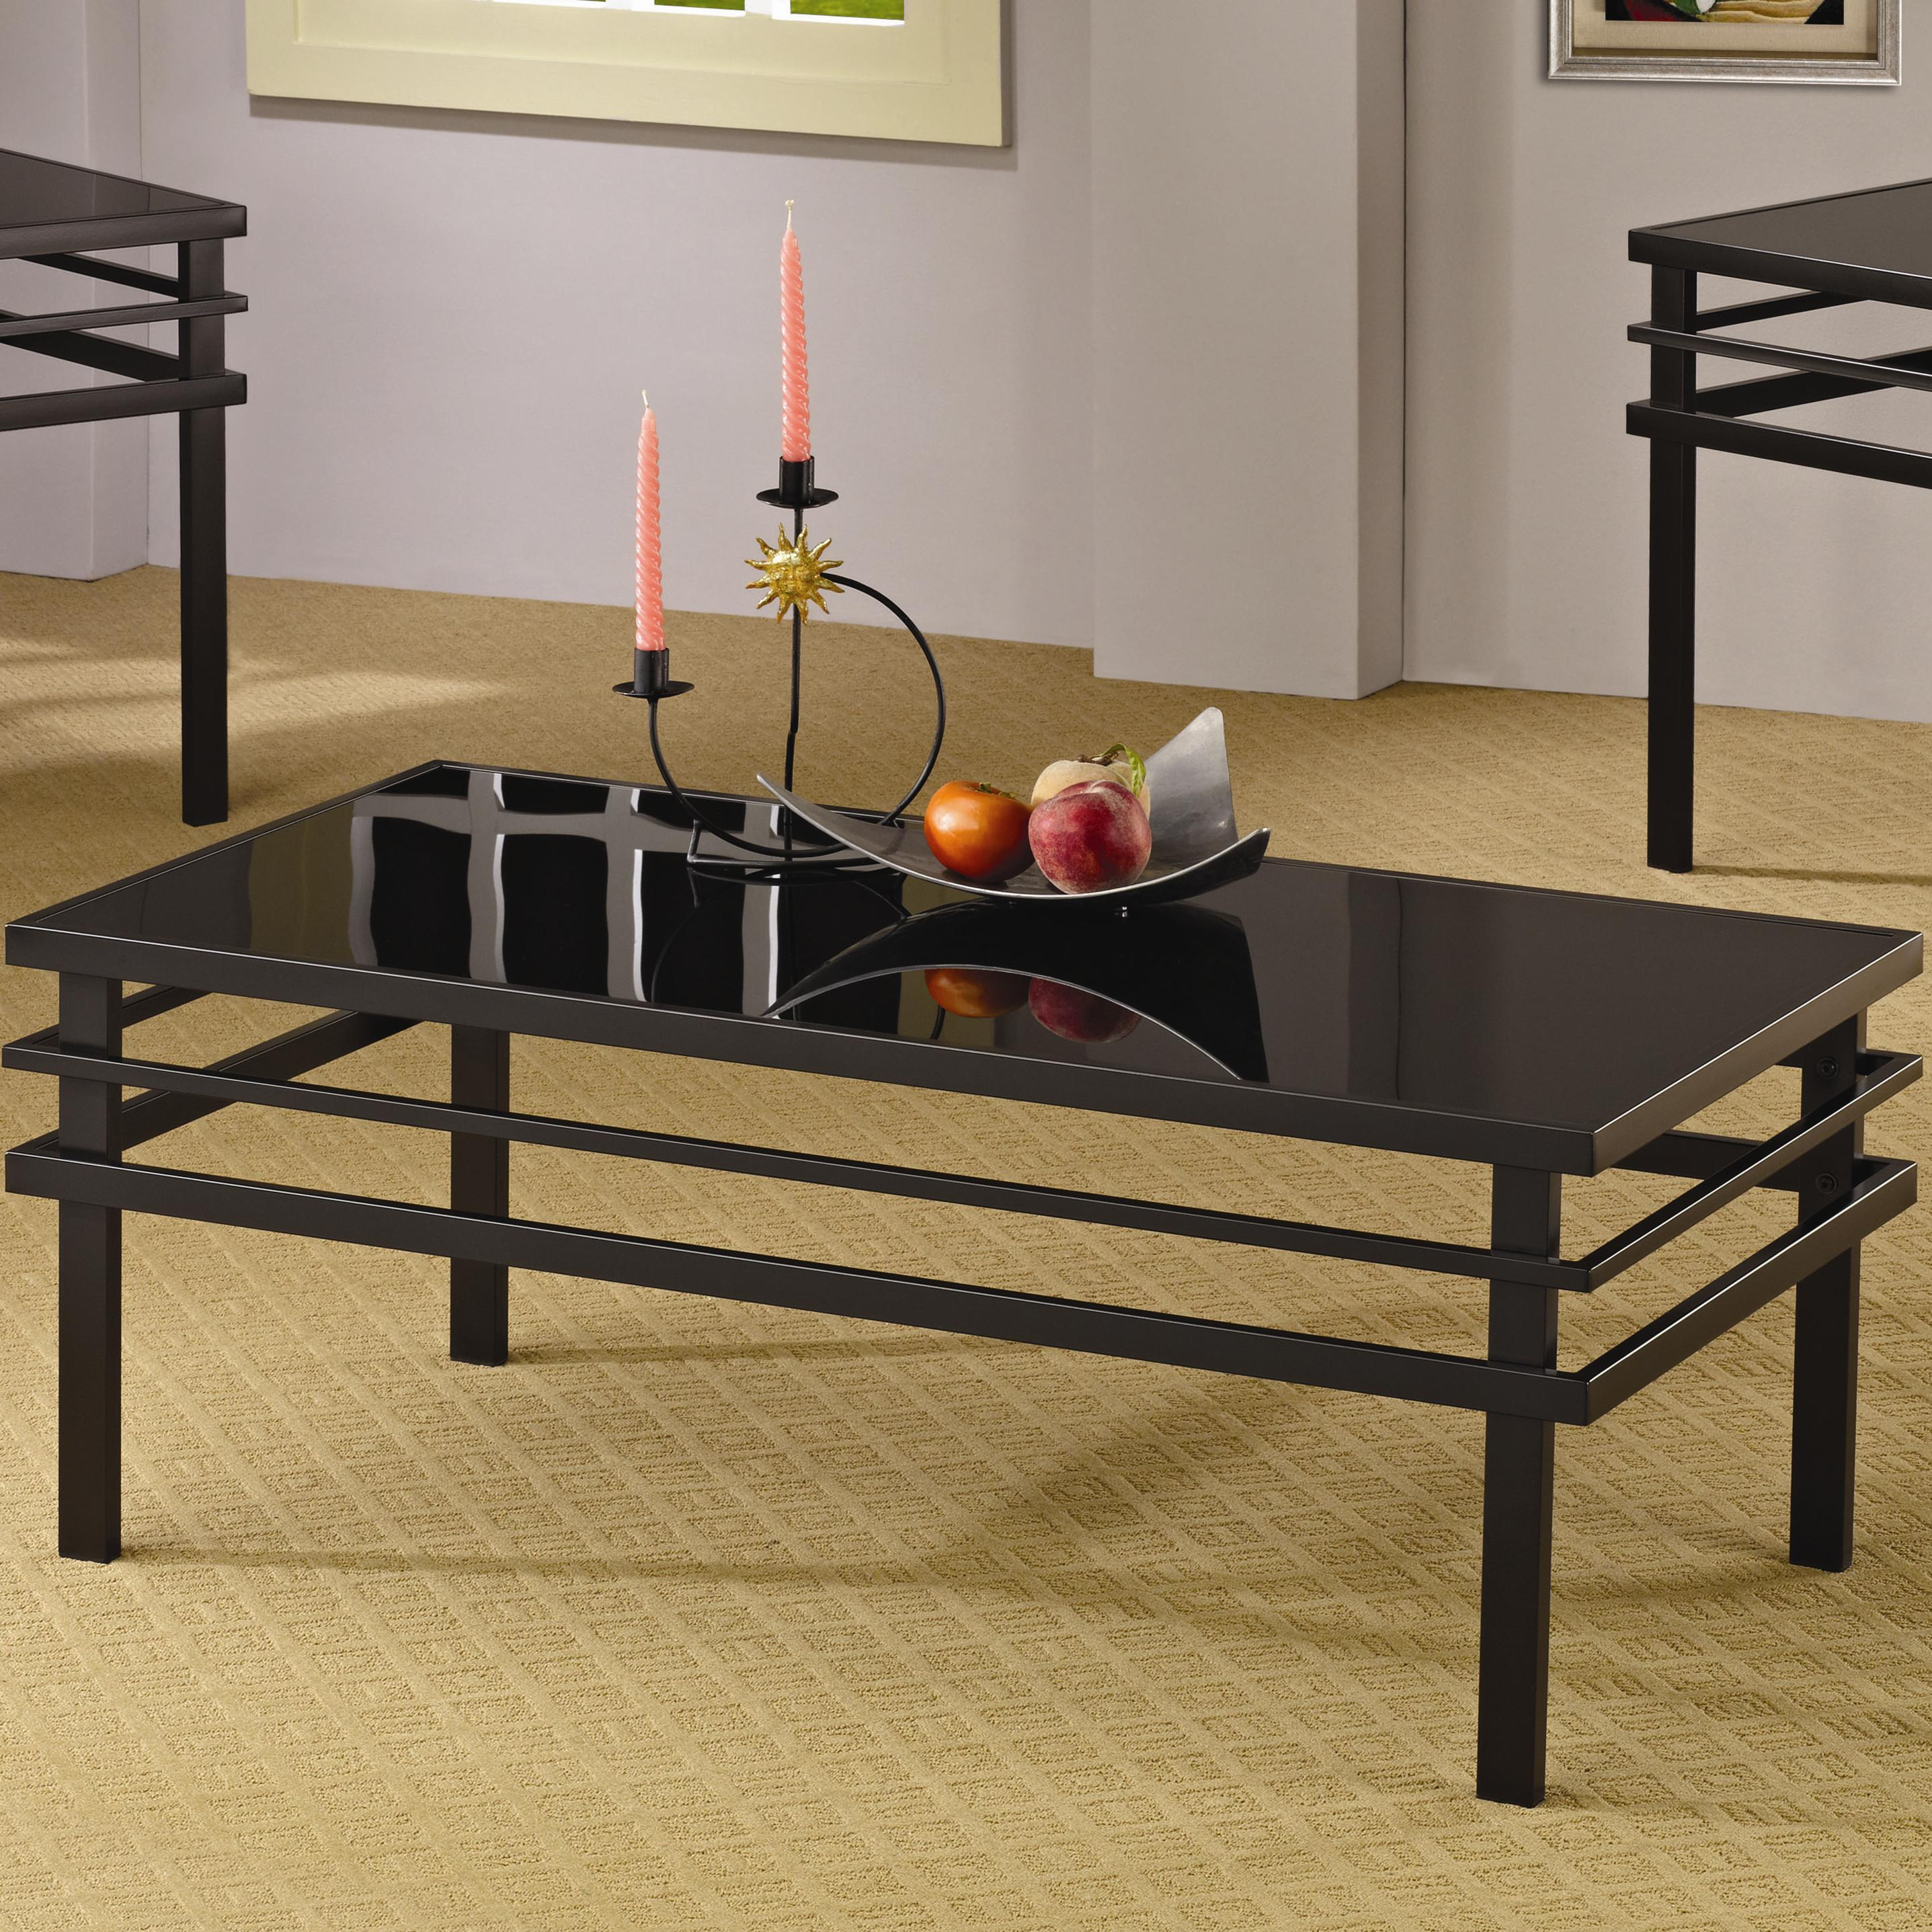 3 Piece Occasional Table Sets Modern Coffee Table And End